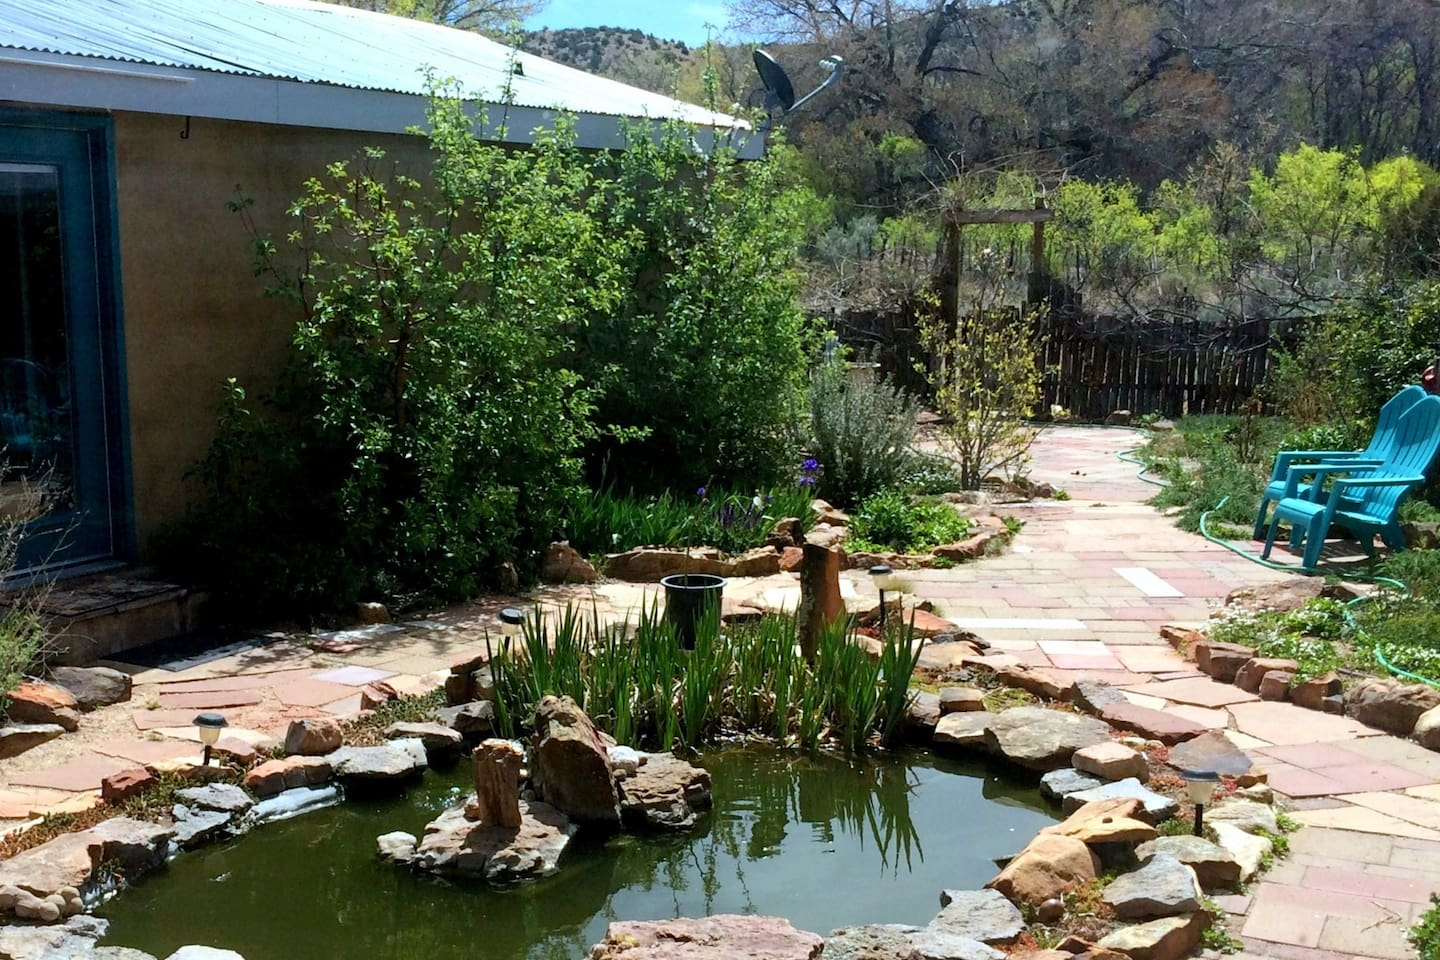 Fish pond is the highlight of the patio.  Guests are also free to use the hot tub on the patio.